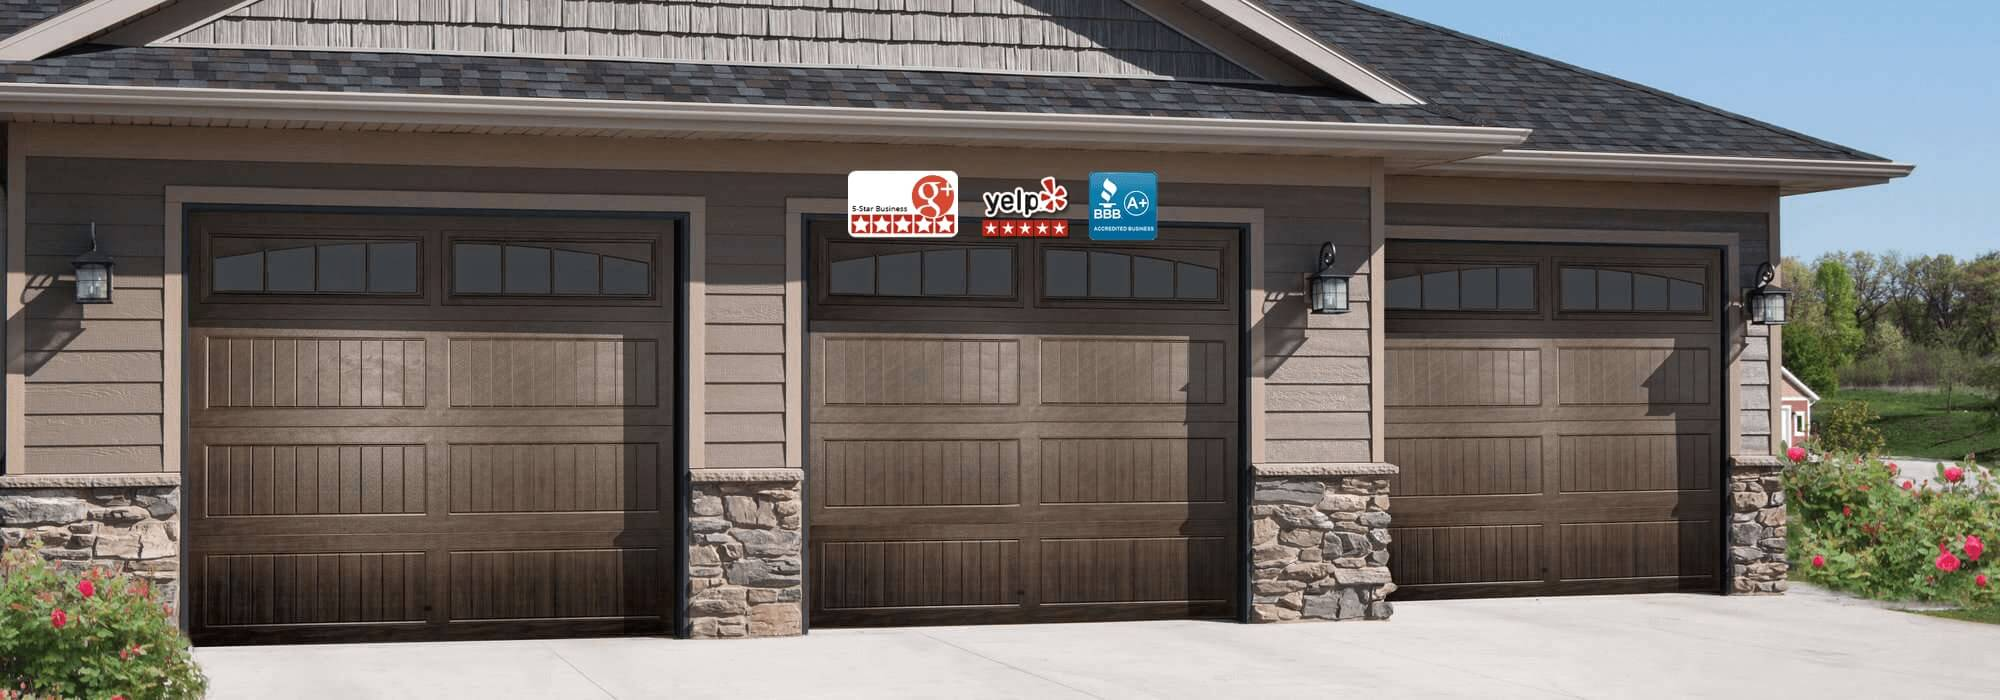 garage door repair denver co repair and service for. Black Bedroom Furniture Sets. Home Design Ideas